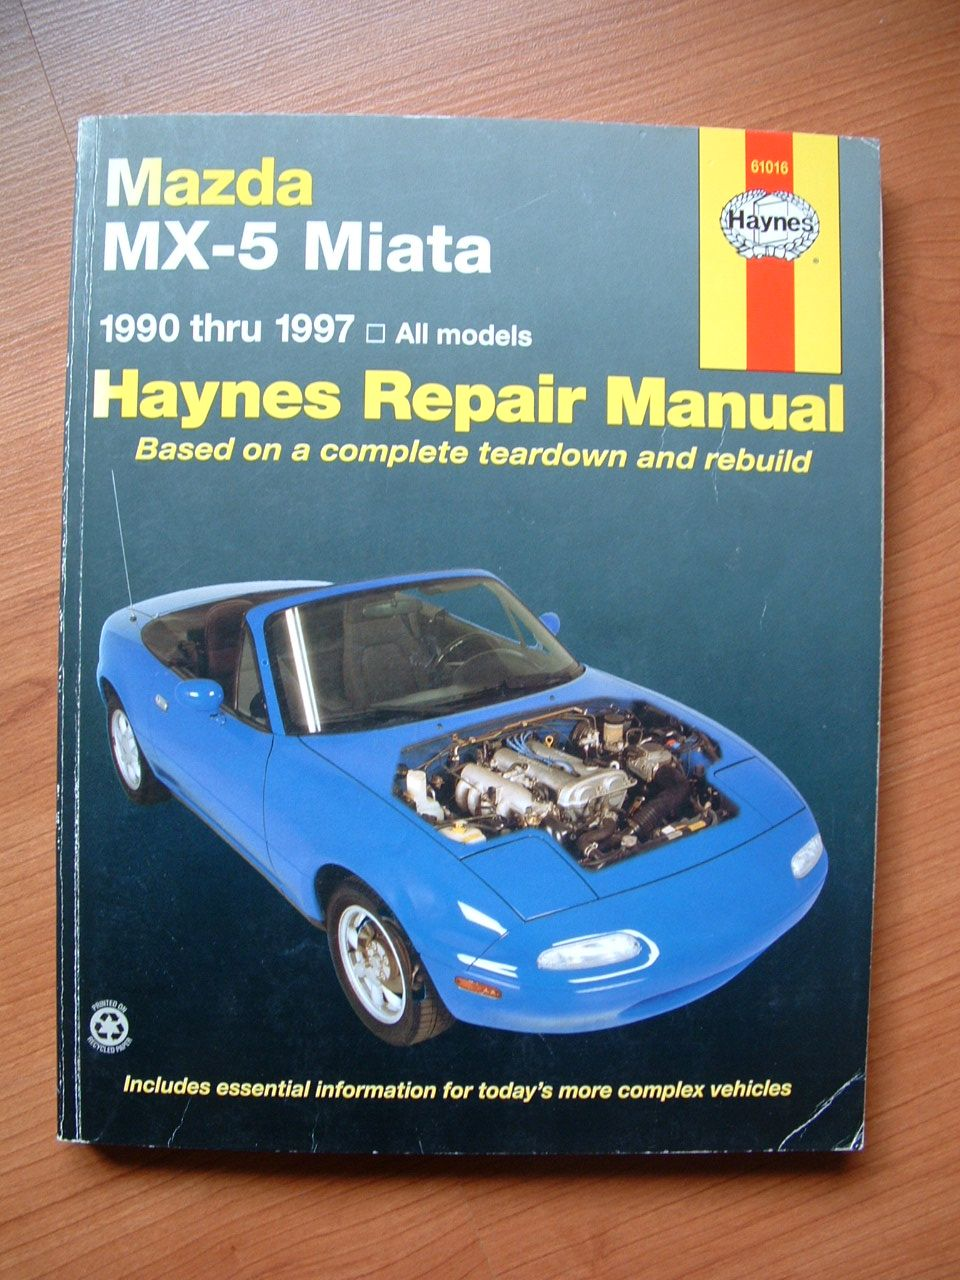 mazda mx 5 miata haynes repair manual rh mazda miata nl ND Miata mx5 na service manual